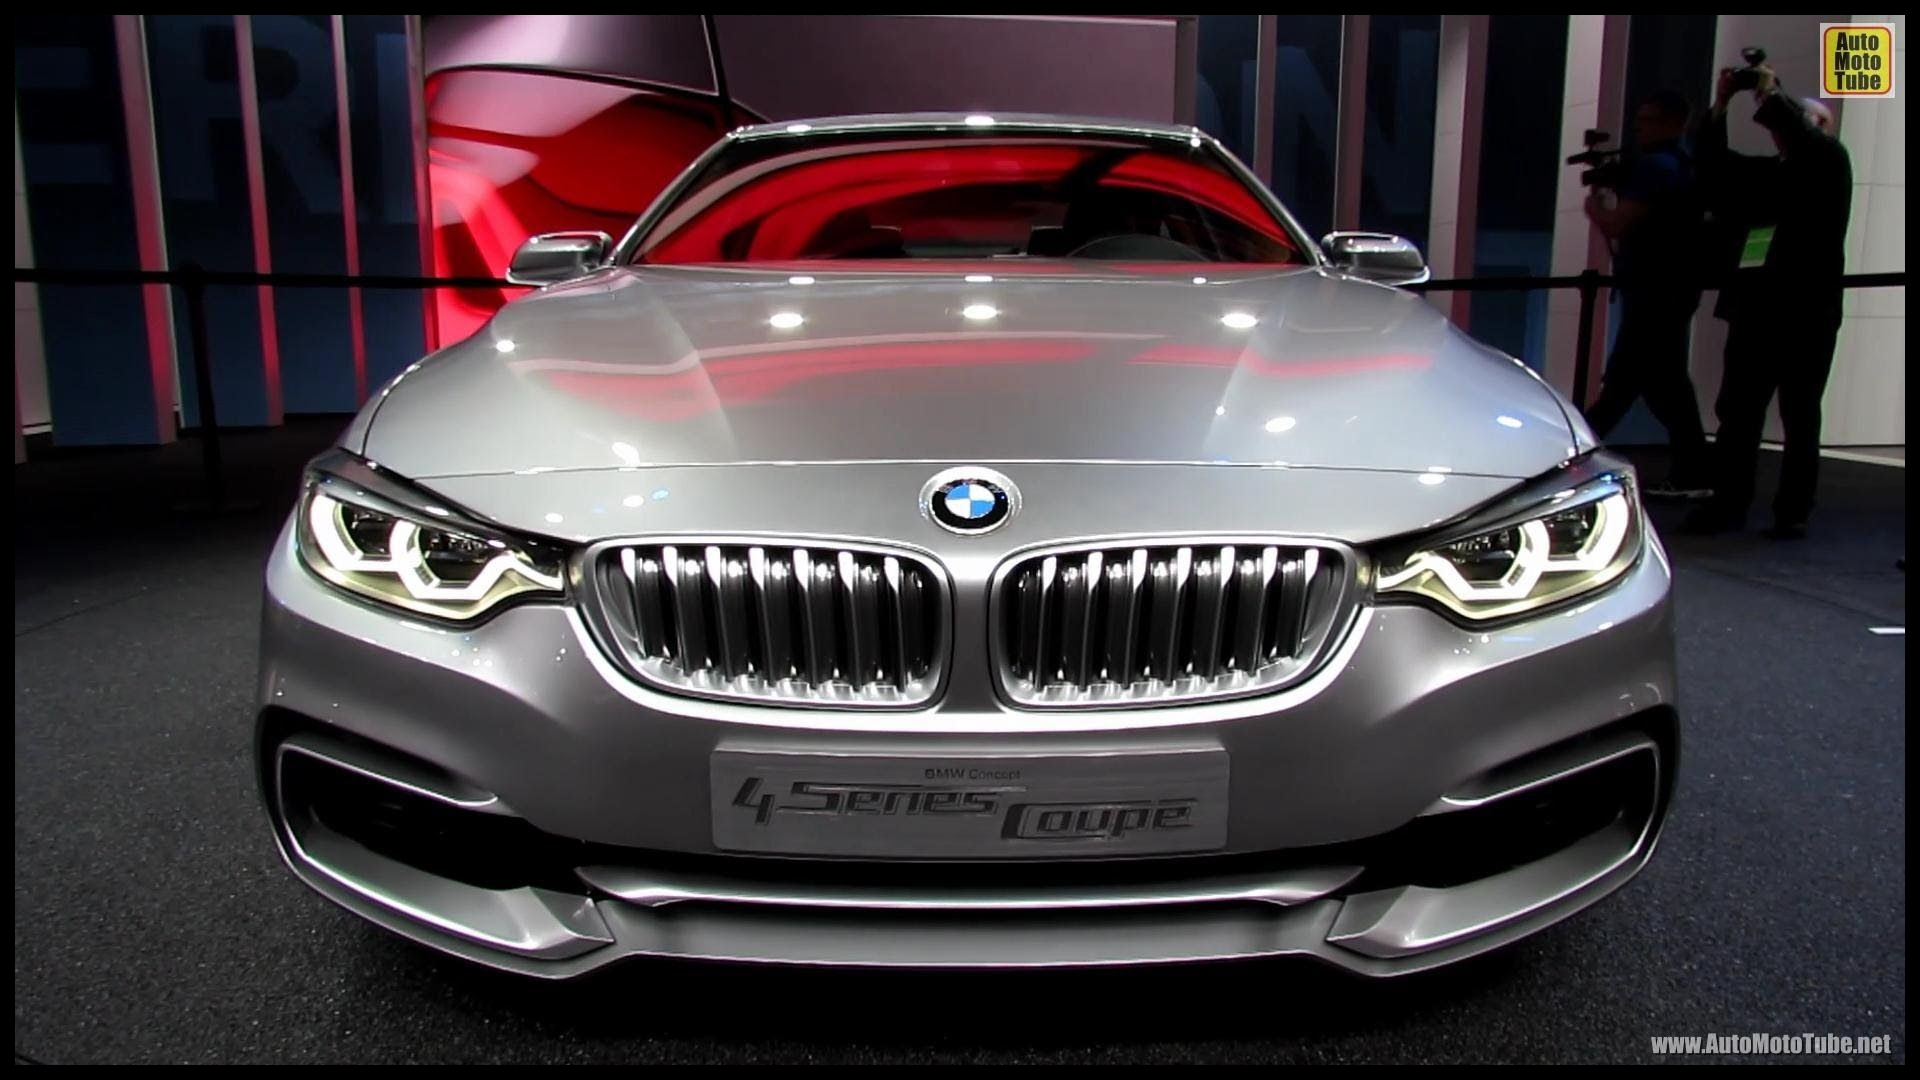 7 Series Bmw Coupe Best 2015 Bmw 7 Series Interior